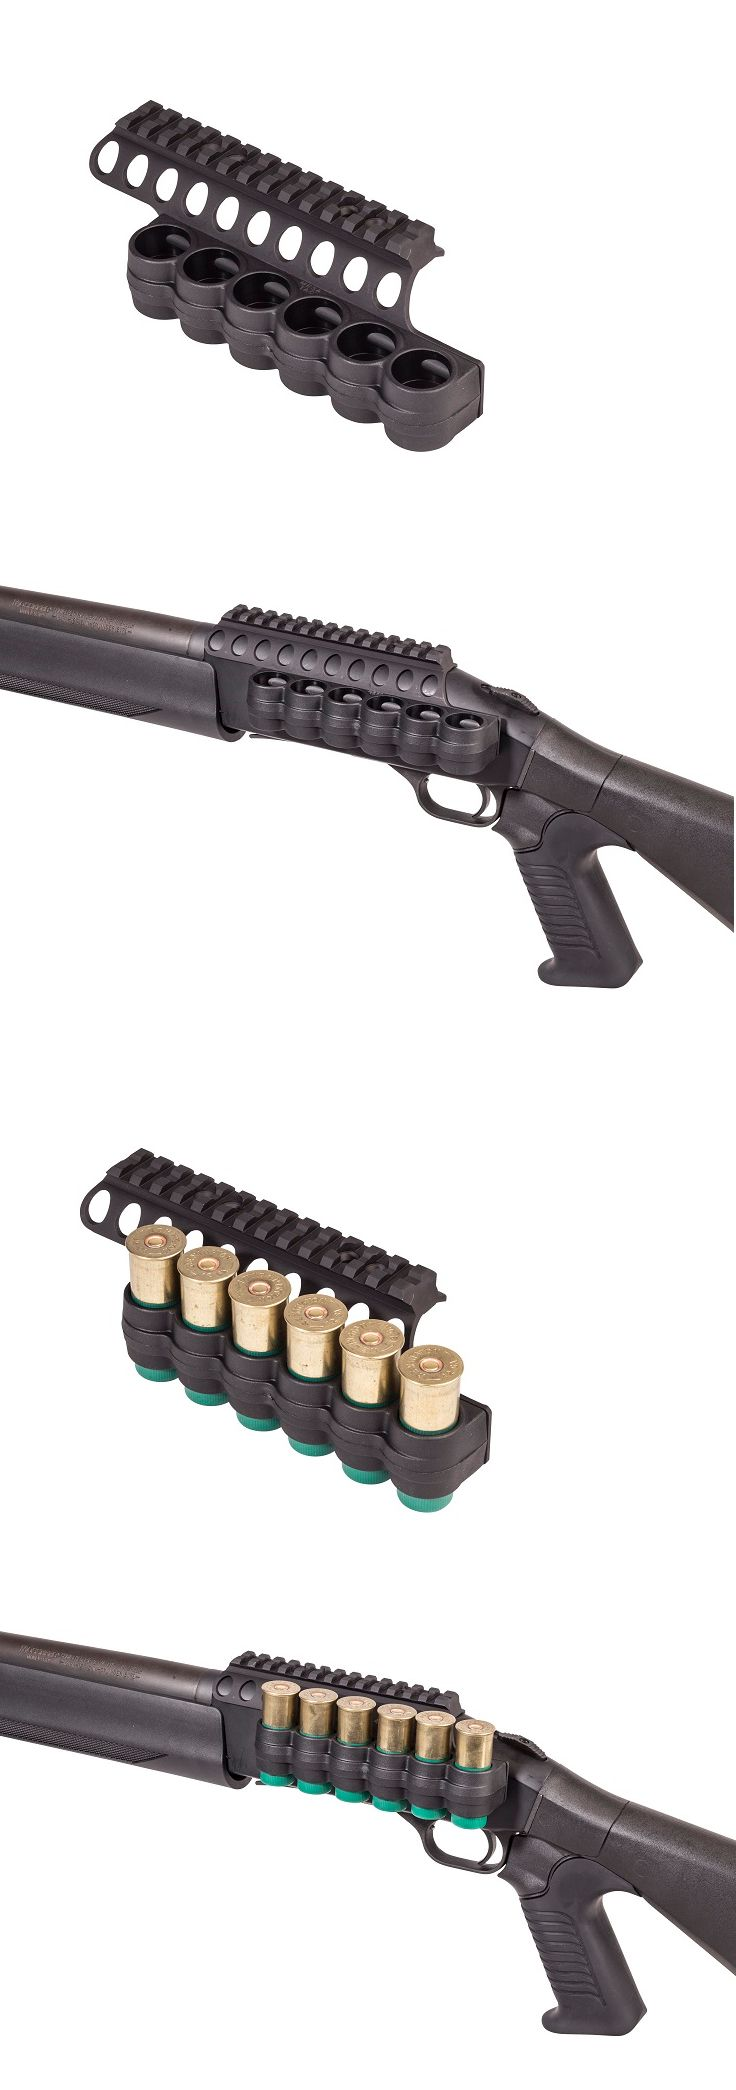 Ammunition Belts and Bandoliers 177884: Mesa Tactical Sureshell® Polymer Carrier/Rail Moss 930 6-Shell,12Ga, 5-In 94890 -> BUY IT NOW ONLY: $83.99 on eBay!